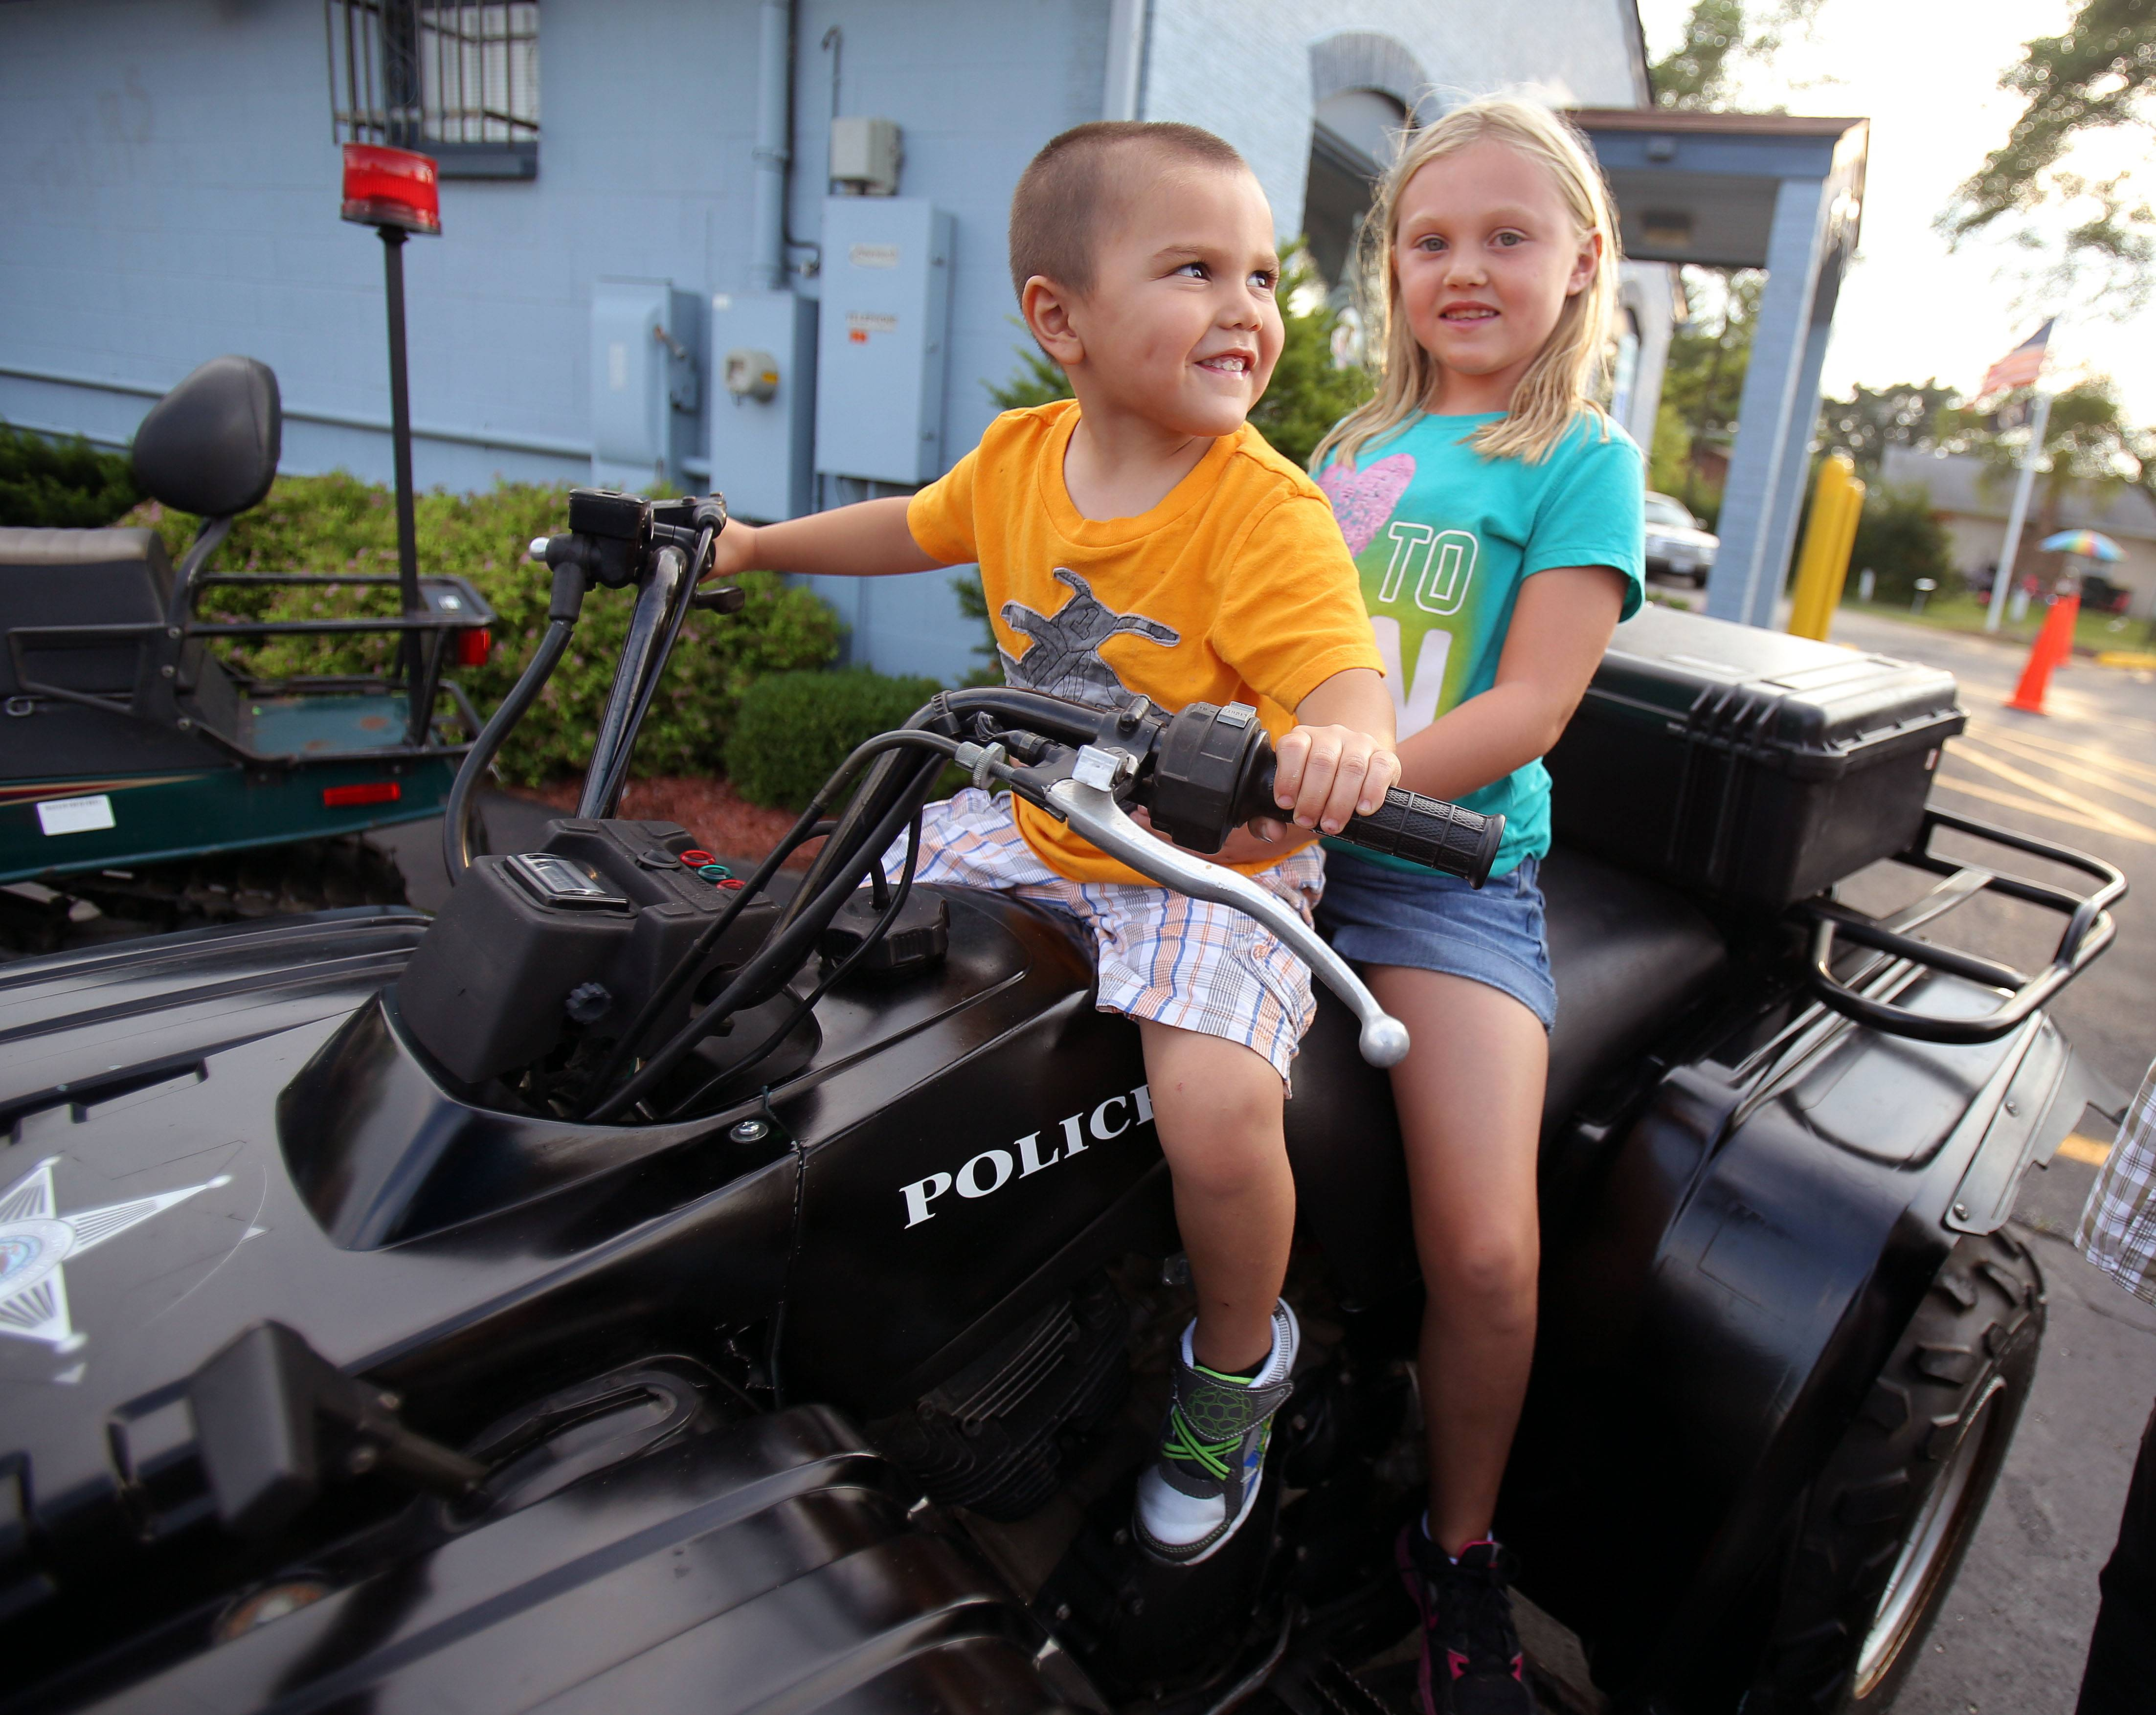 Bradley Sobecki, 3 and his sister Grace, 8, both of Fox Lake, sit on a police 4-wheeler during National Night Out at the Round Lake Park Police Department Tuesday night.